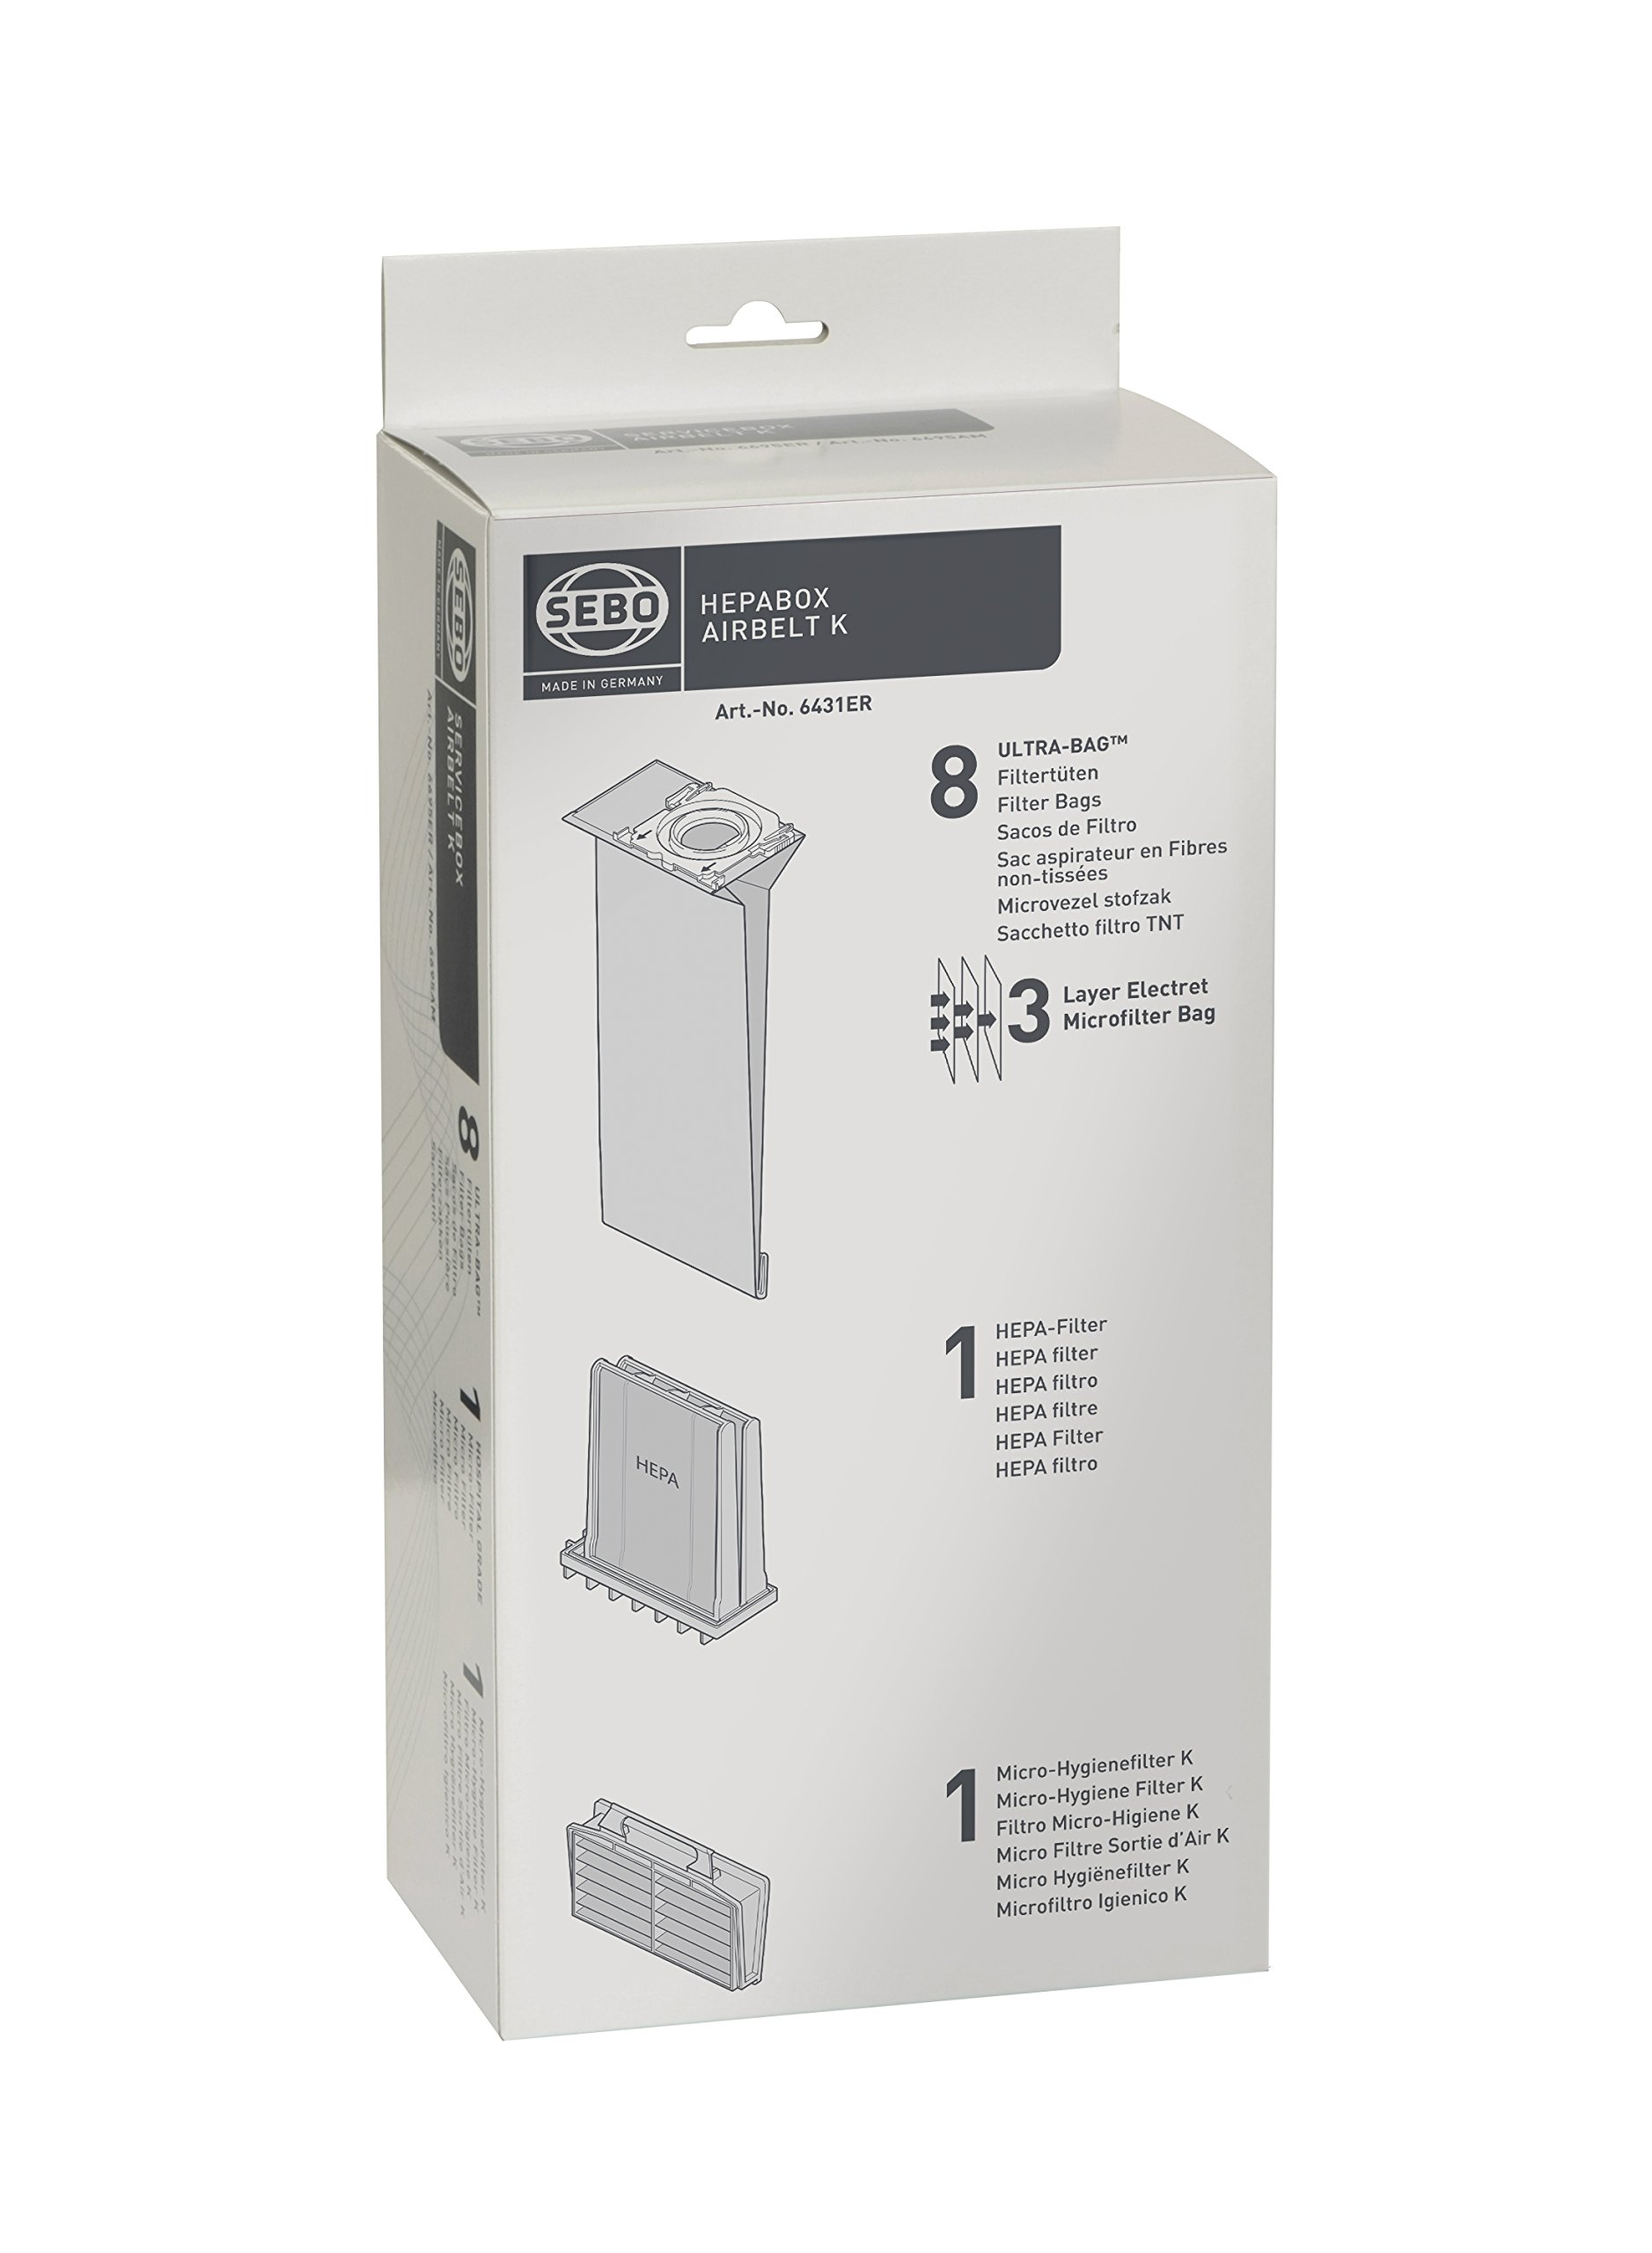 Sebo 6431ER HEPA Service Box for K Series Vacuum with 8 Ultra Bags, Exhaust Filter and HEPA Pre-Motor Microfilter